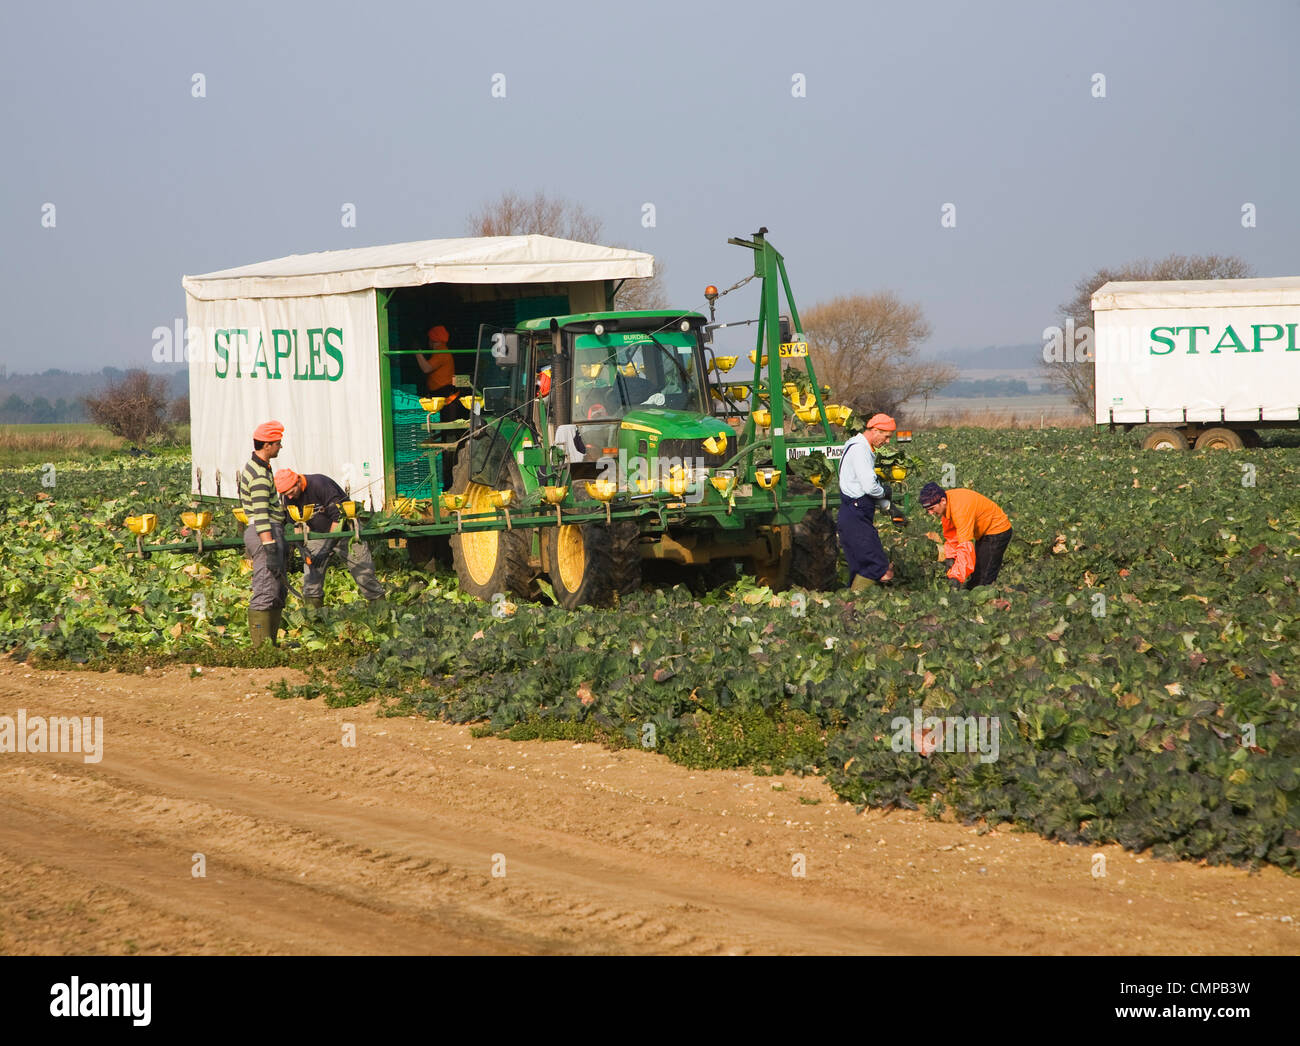 Staples vegetable harvester and team of workers, Iken, Suffolk, England - Stock Image